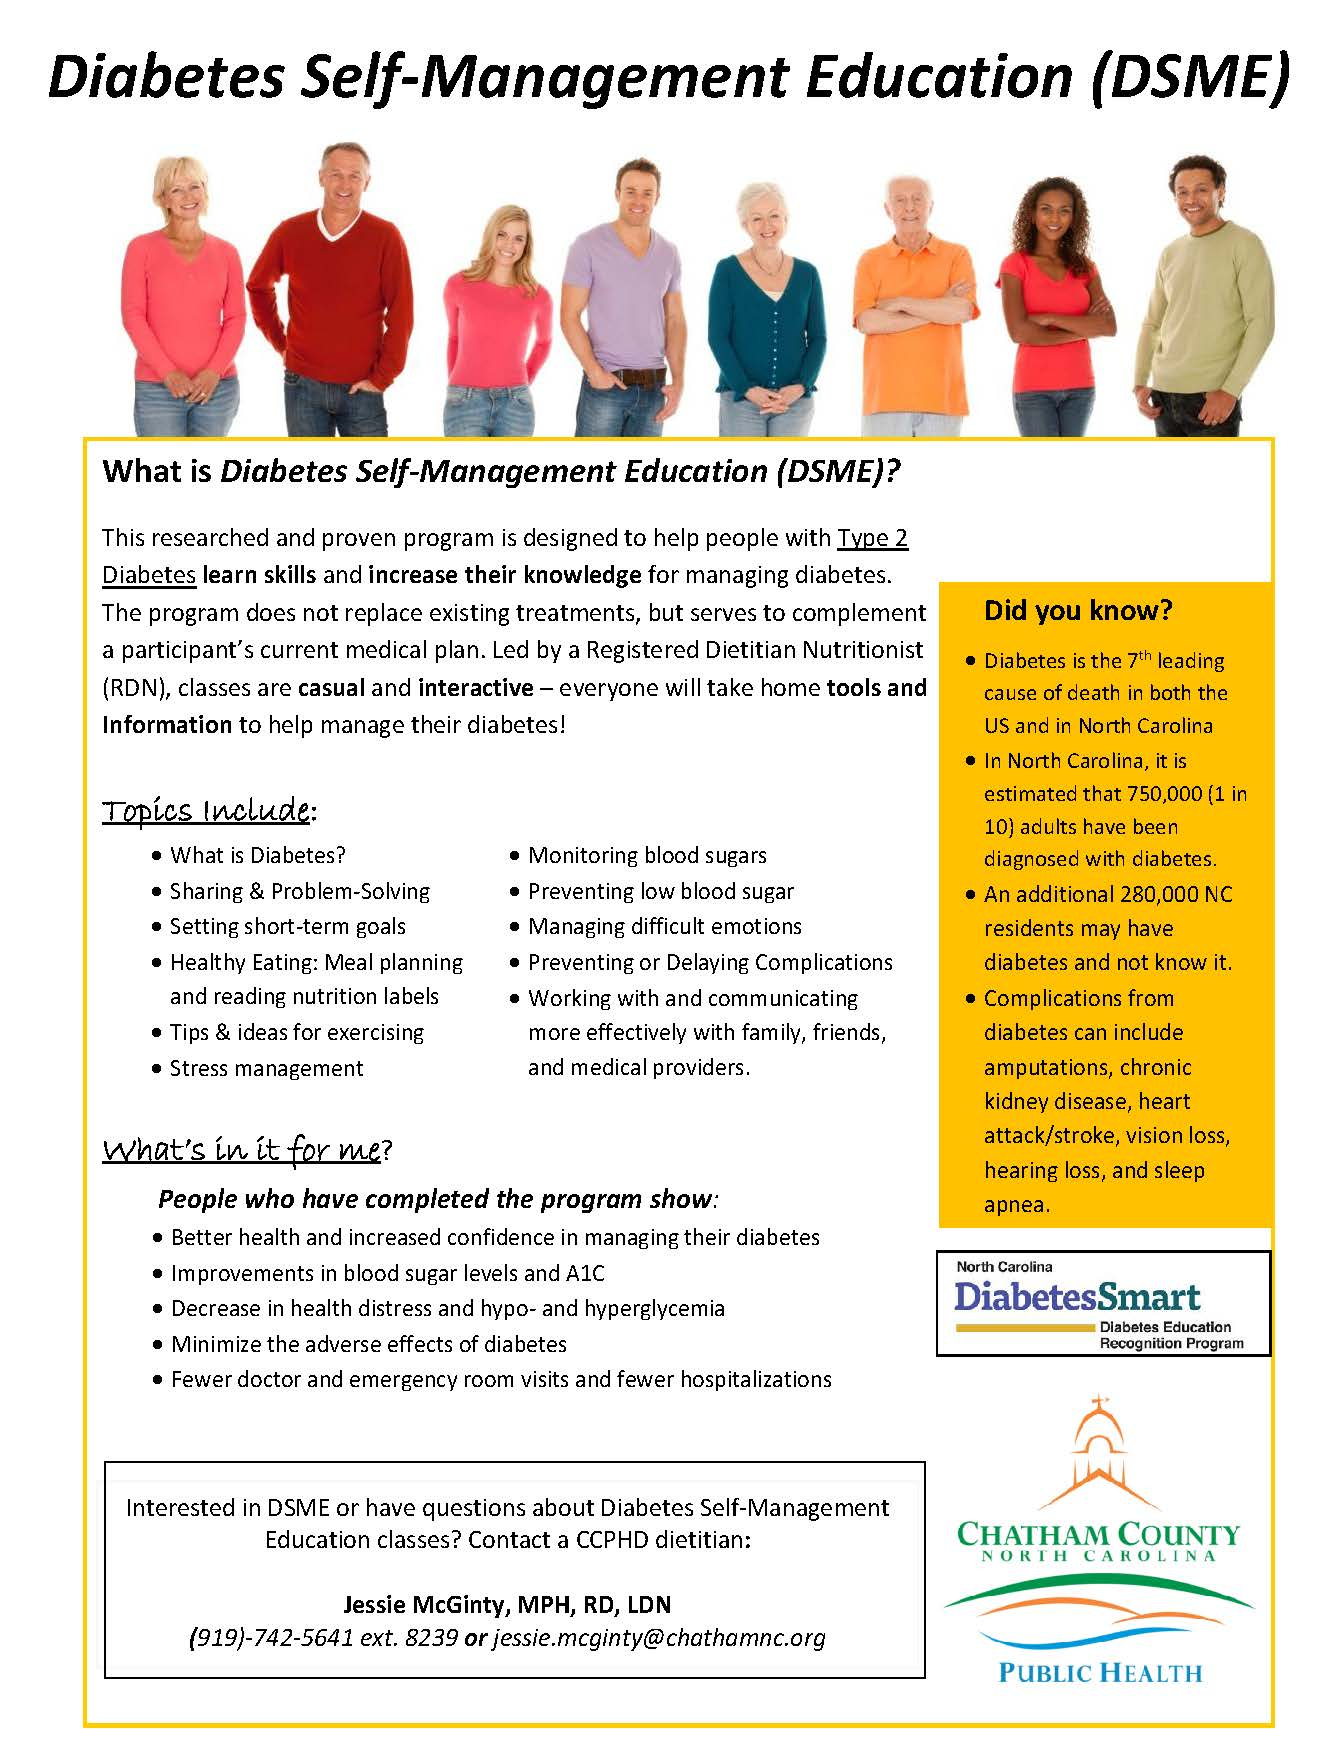 DSME Flyer for county website